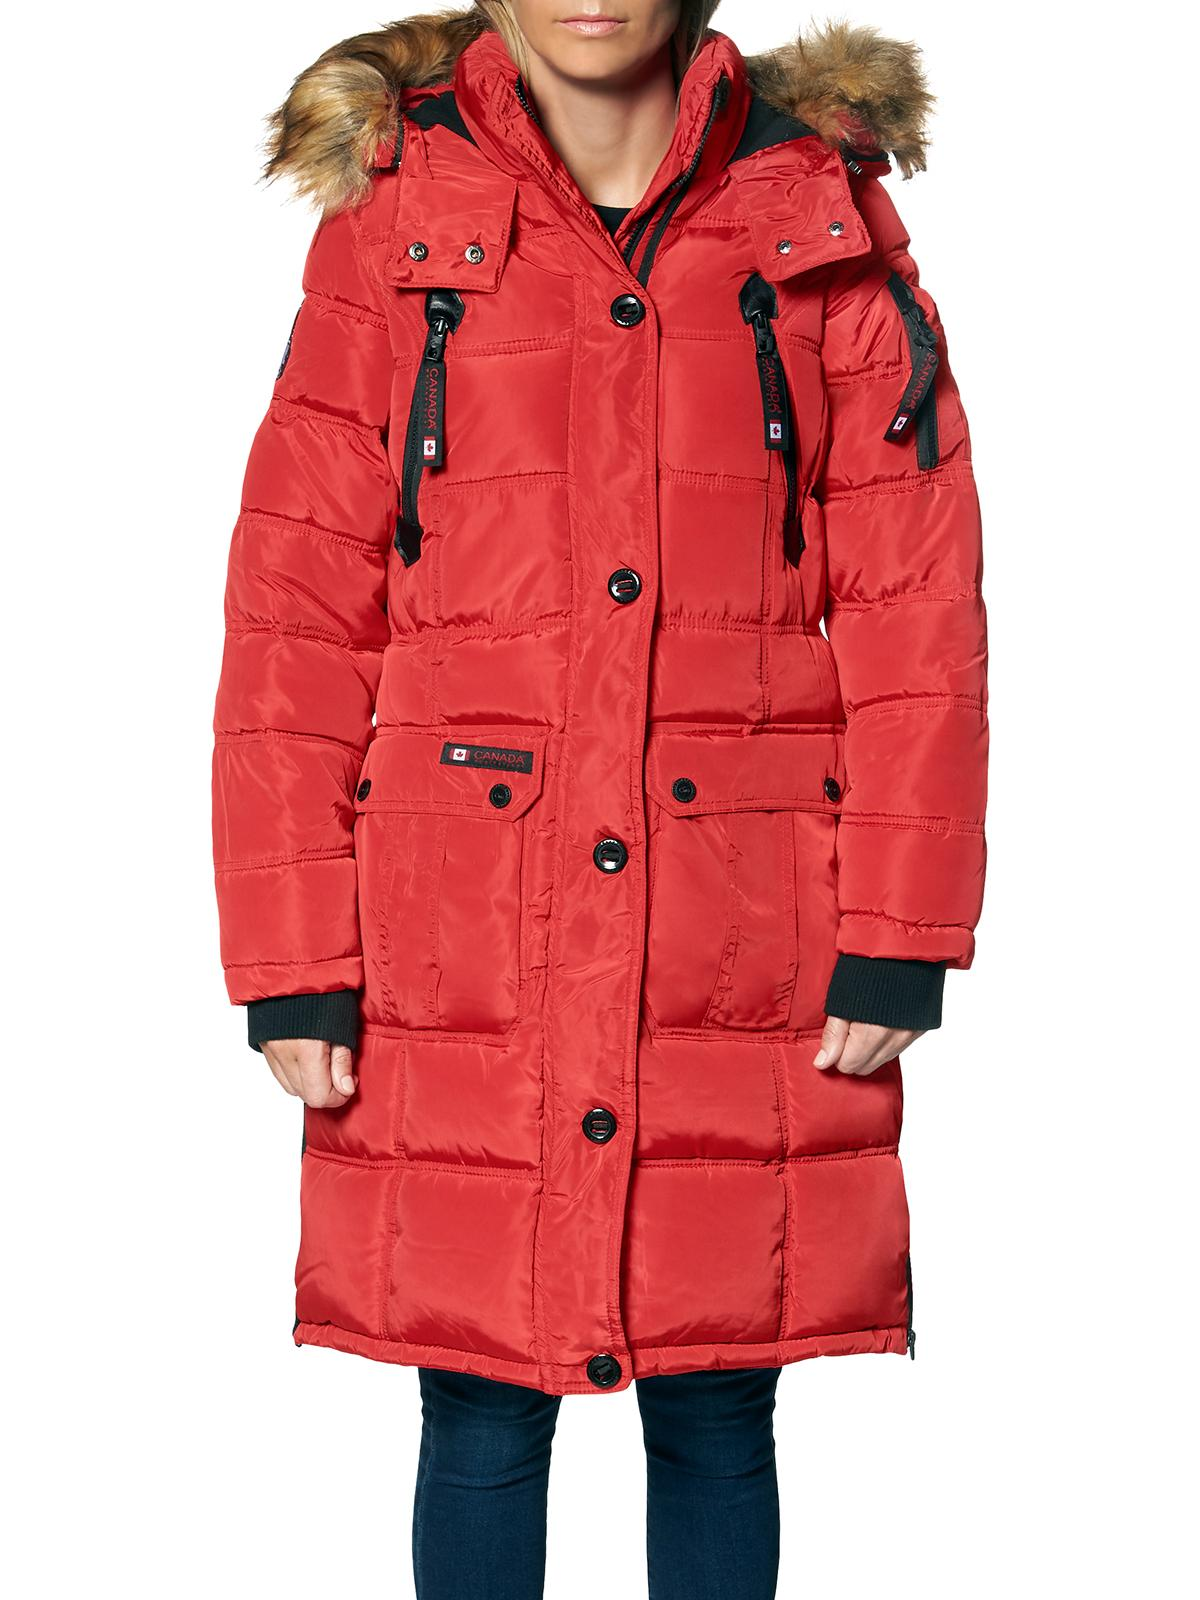 CANADA WEATHER GEAR Girls Winter Coat Heavyweight Anorak Parka Jacket with Removable Faux-Fur Lined Hood